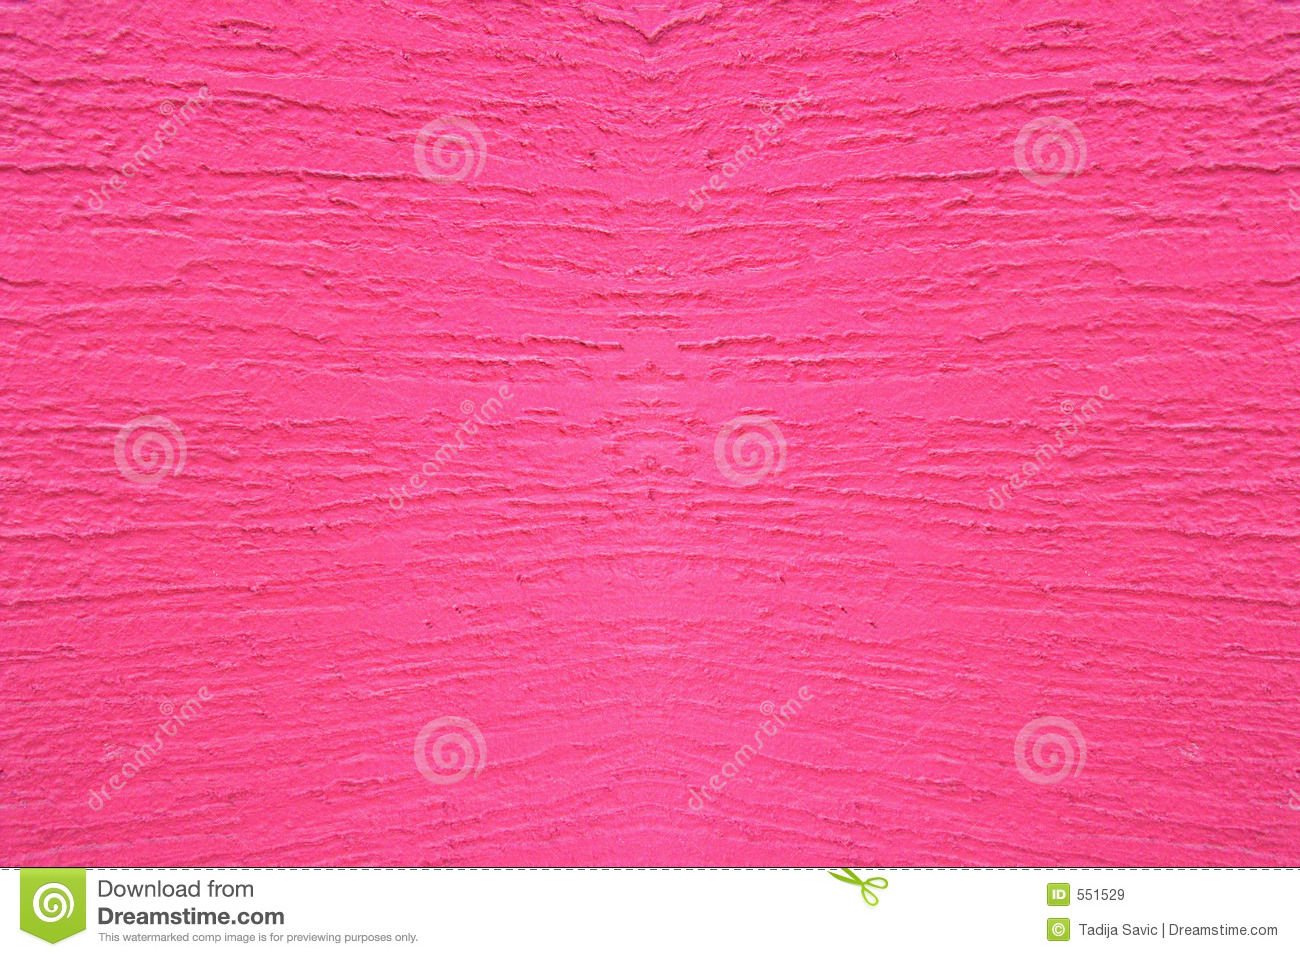 Milieux magenta abstraits